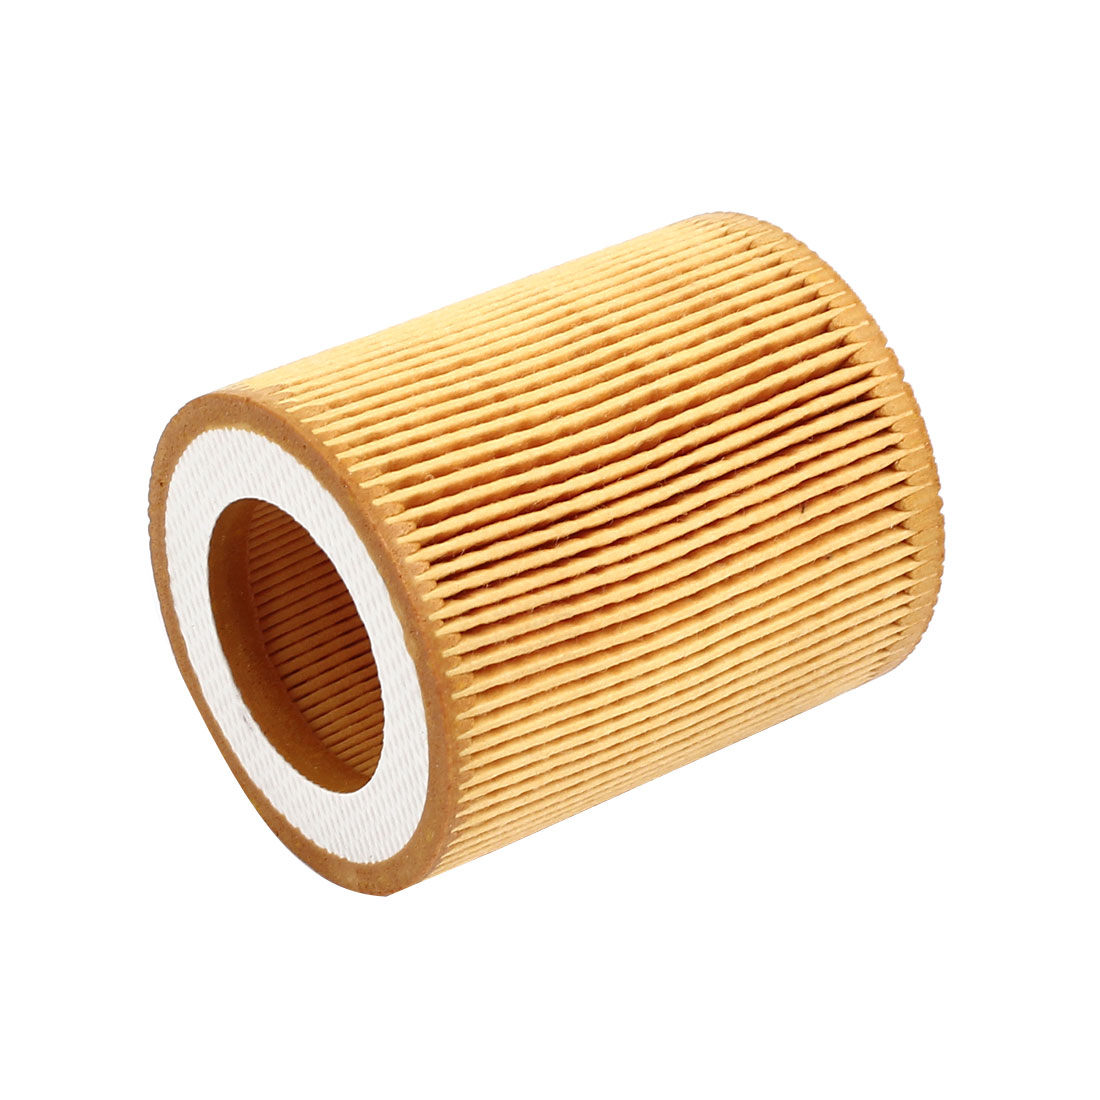 C630 69mmx60mmx35mm Air Compressor Filter Replacement Paper Element